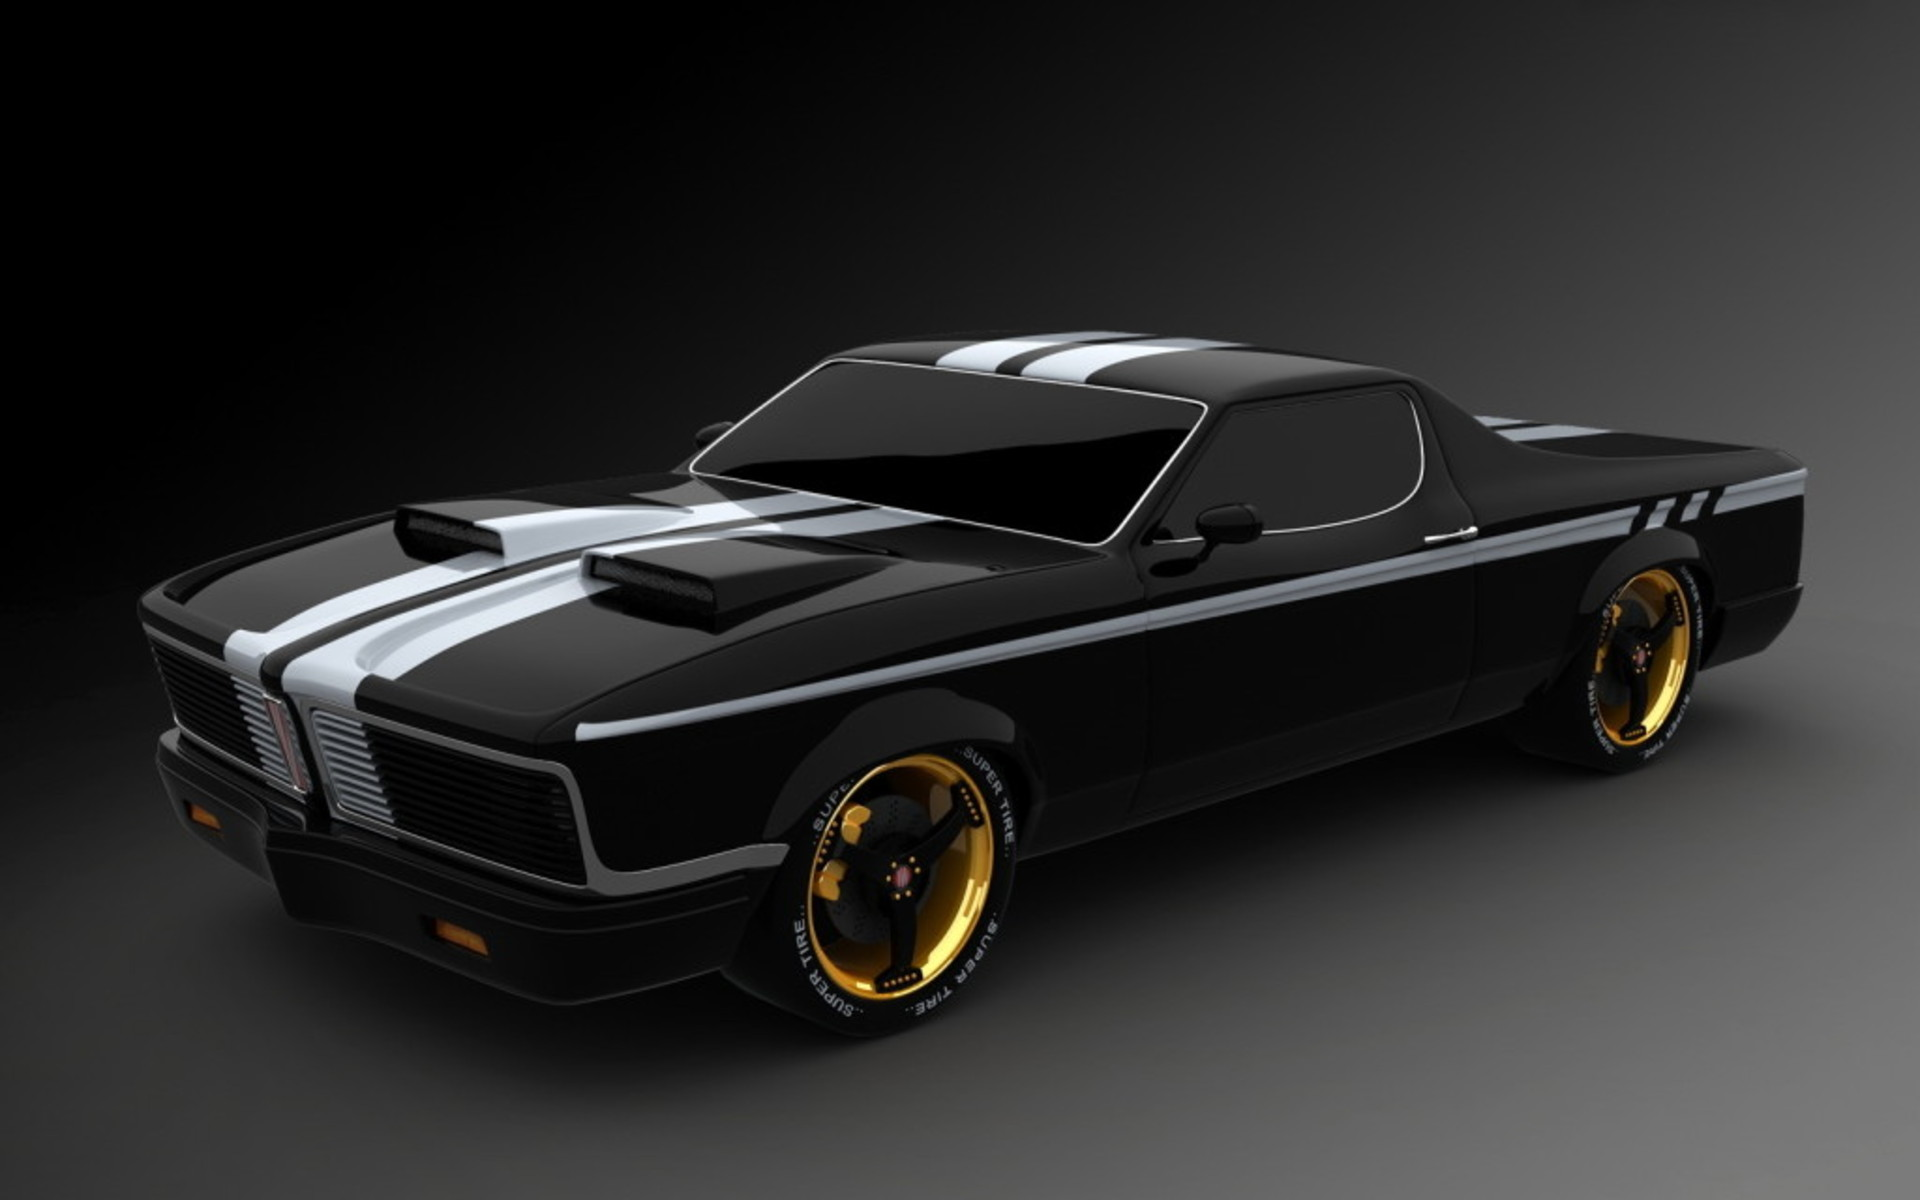 Cool muscle cars wallpaper 1920x1200